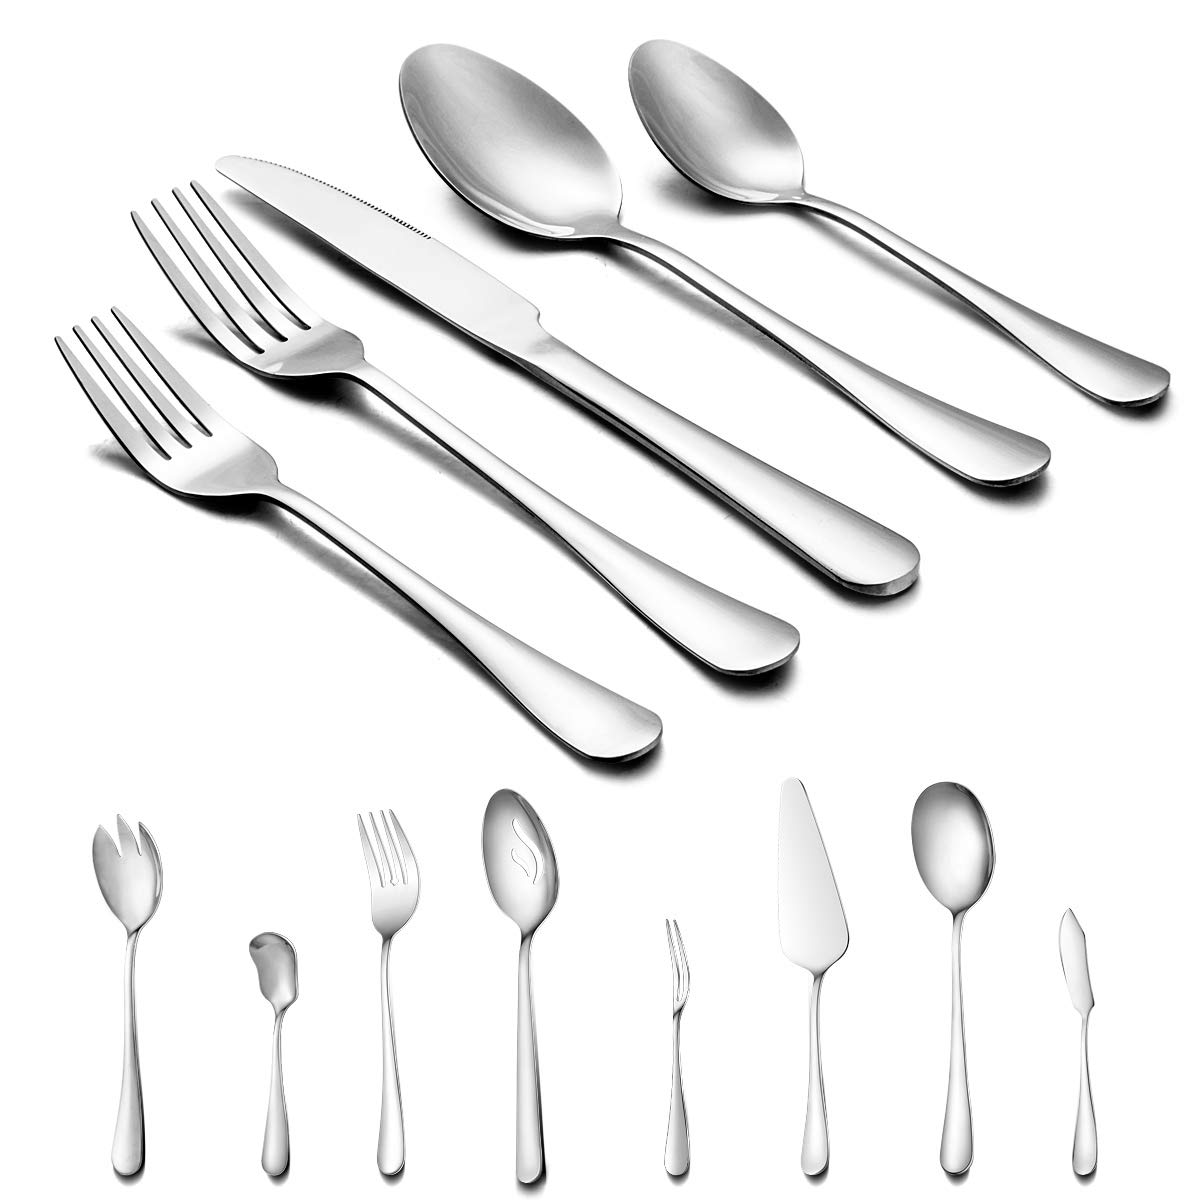 68-Piece Silverware Flatware Cutlery Set - Footek Stainless Steel Flatware Set with Knives Forks Spoons for Dinner & Dessert, Elegant, Dishwasher Safe Tableware Sets